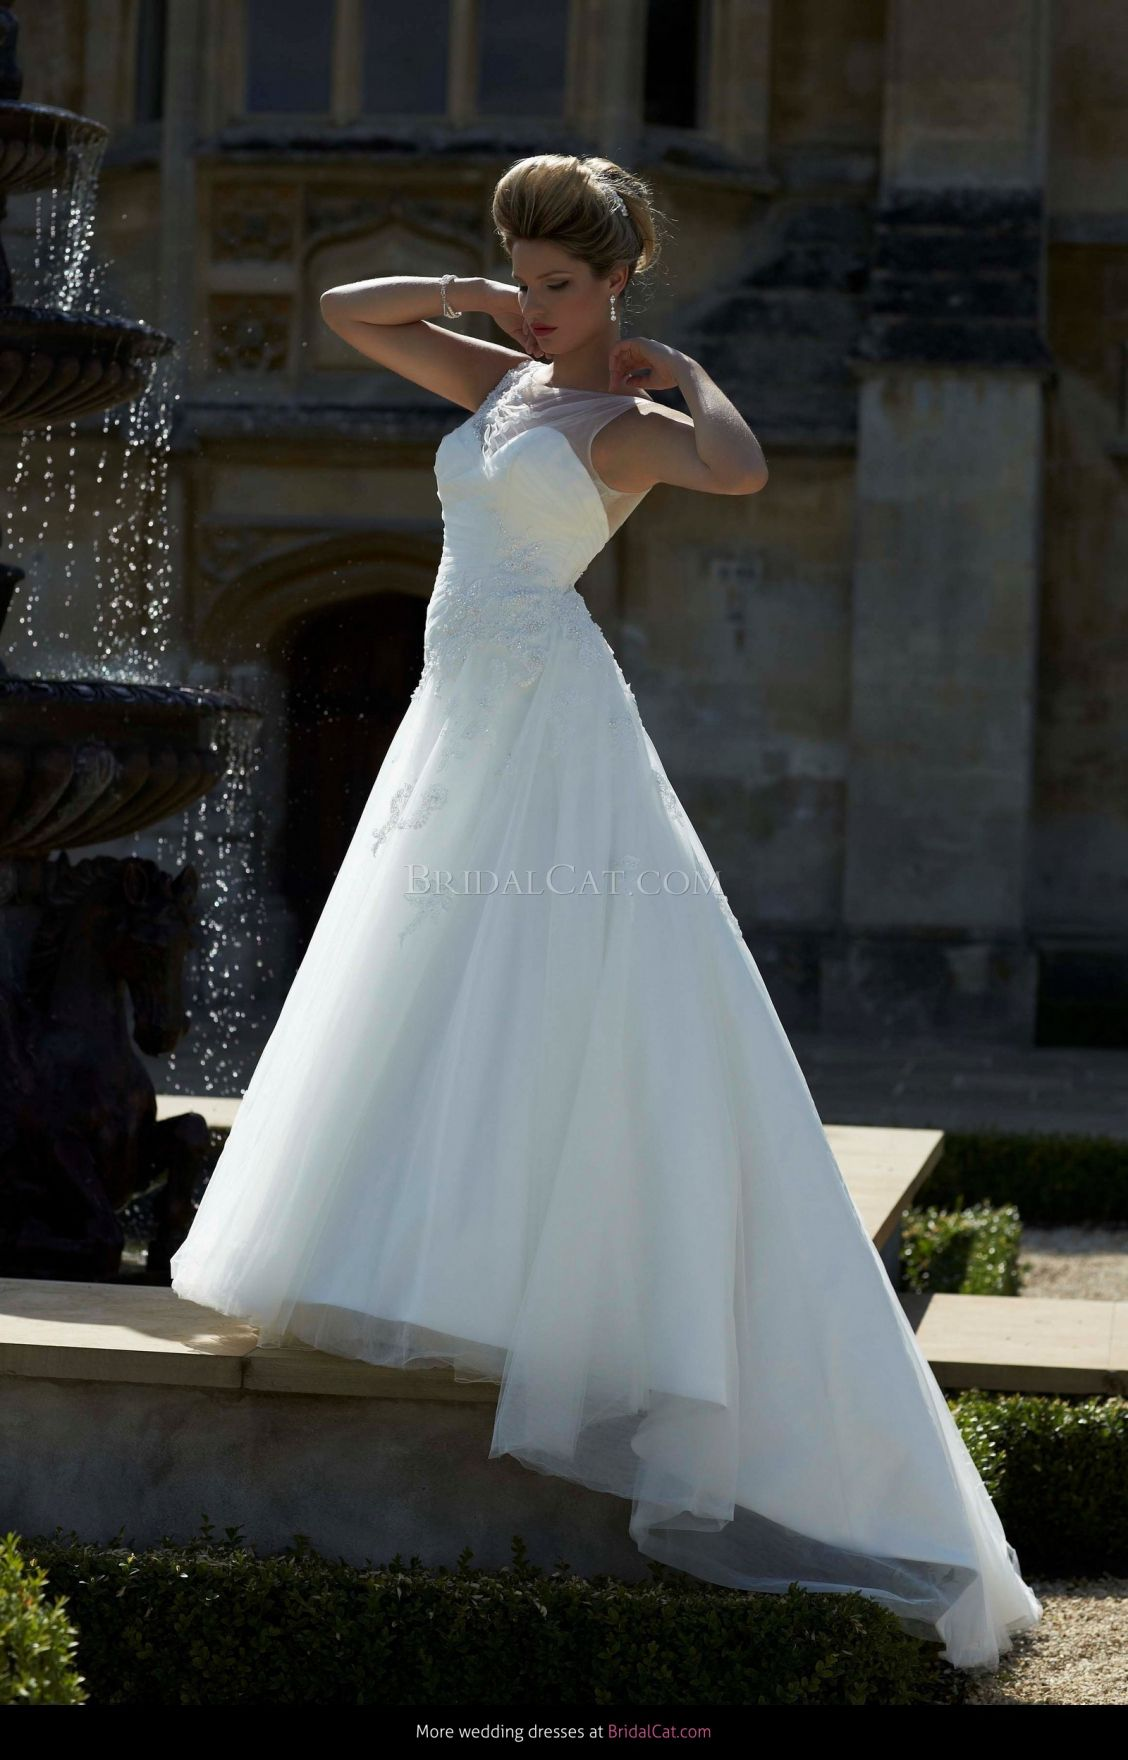 100+ Wedding Dresses In Md - Best Dresses for Wedding Check more at ...